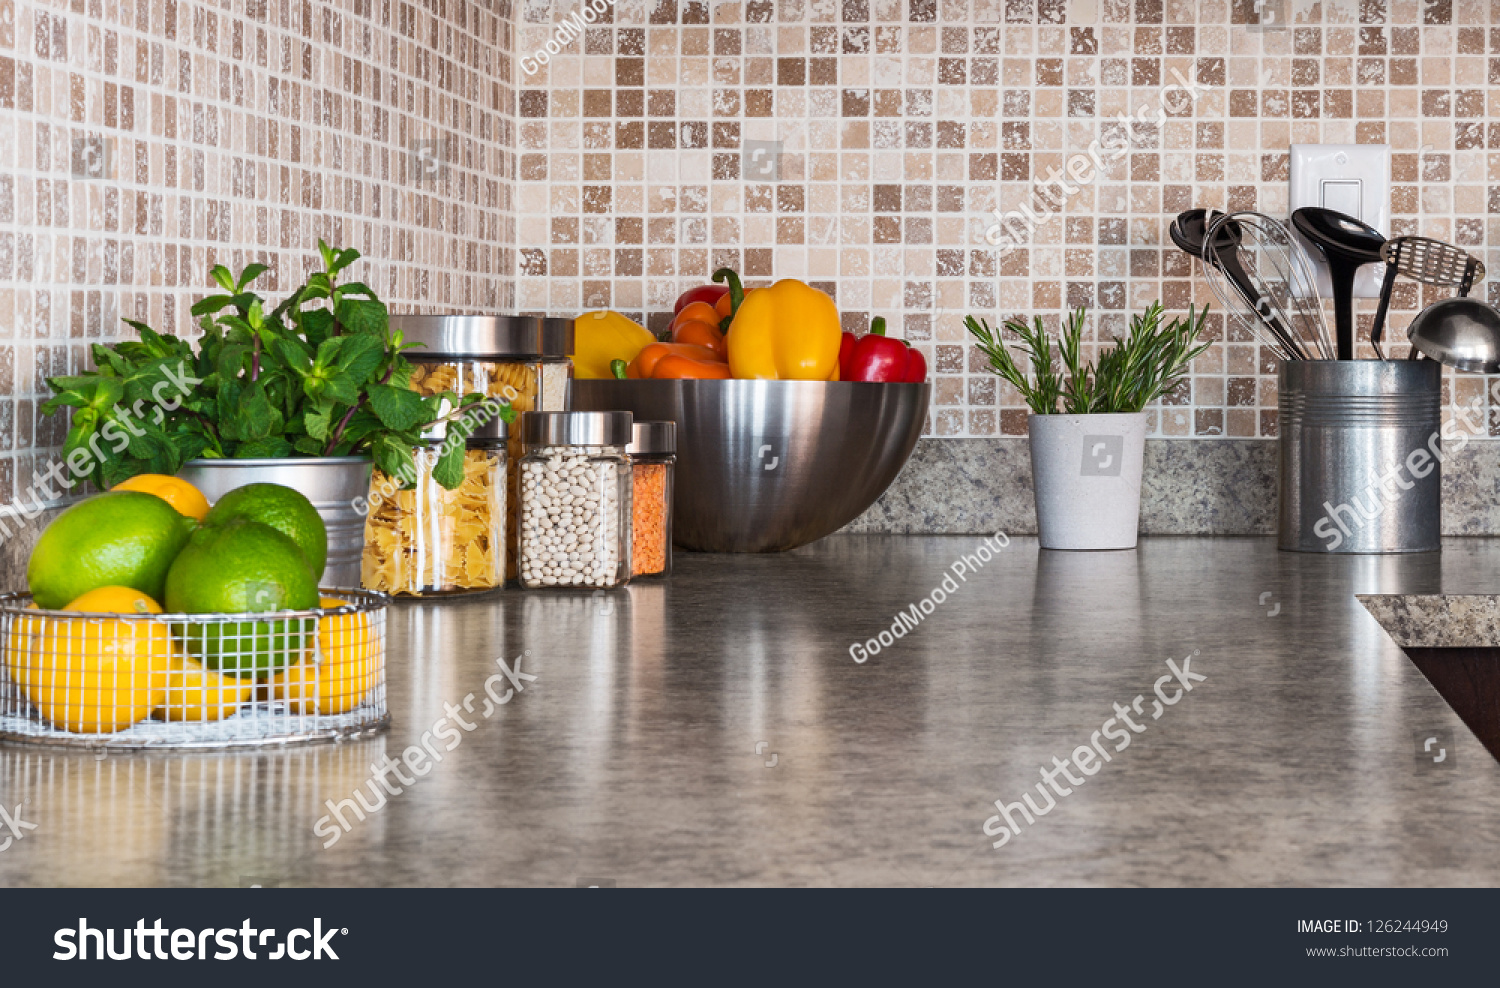 Modern Kitchen Countertop Modern Kitchen Countertop Food Ingredients Green Stock Photo